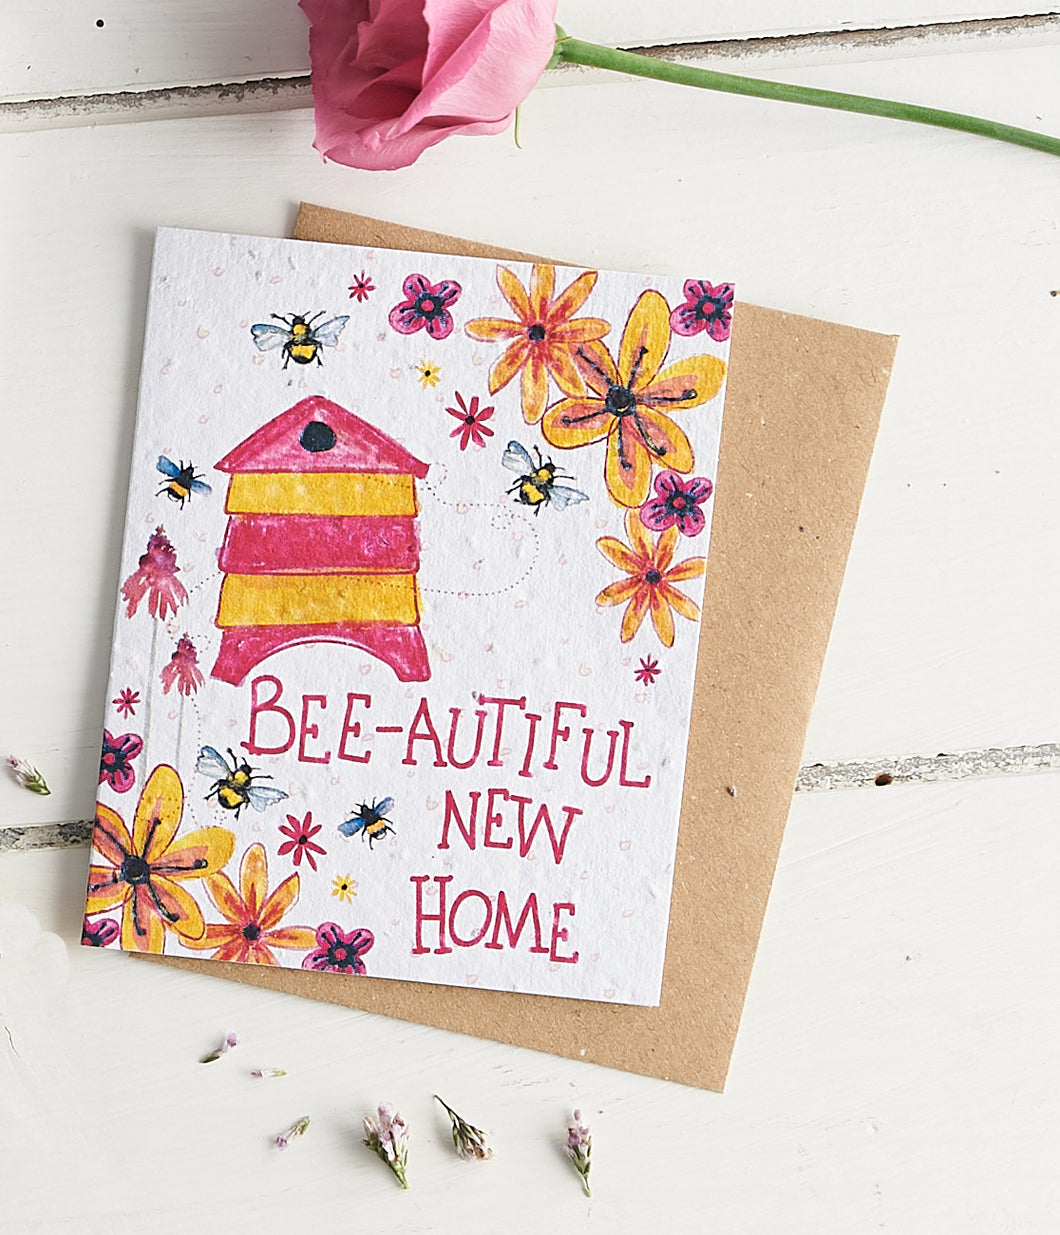 Bee-autiful New Home Plantable Seed card - Greetings Cards - Altruis Living